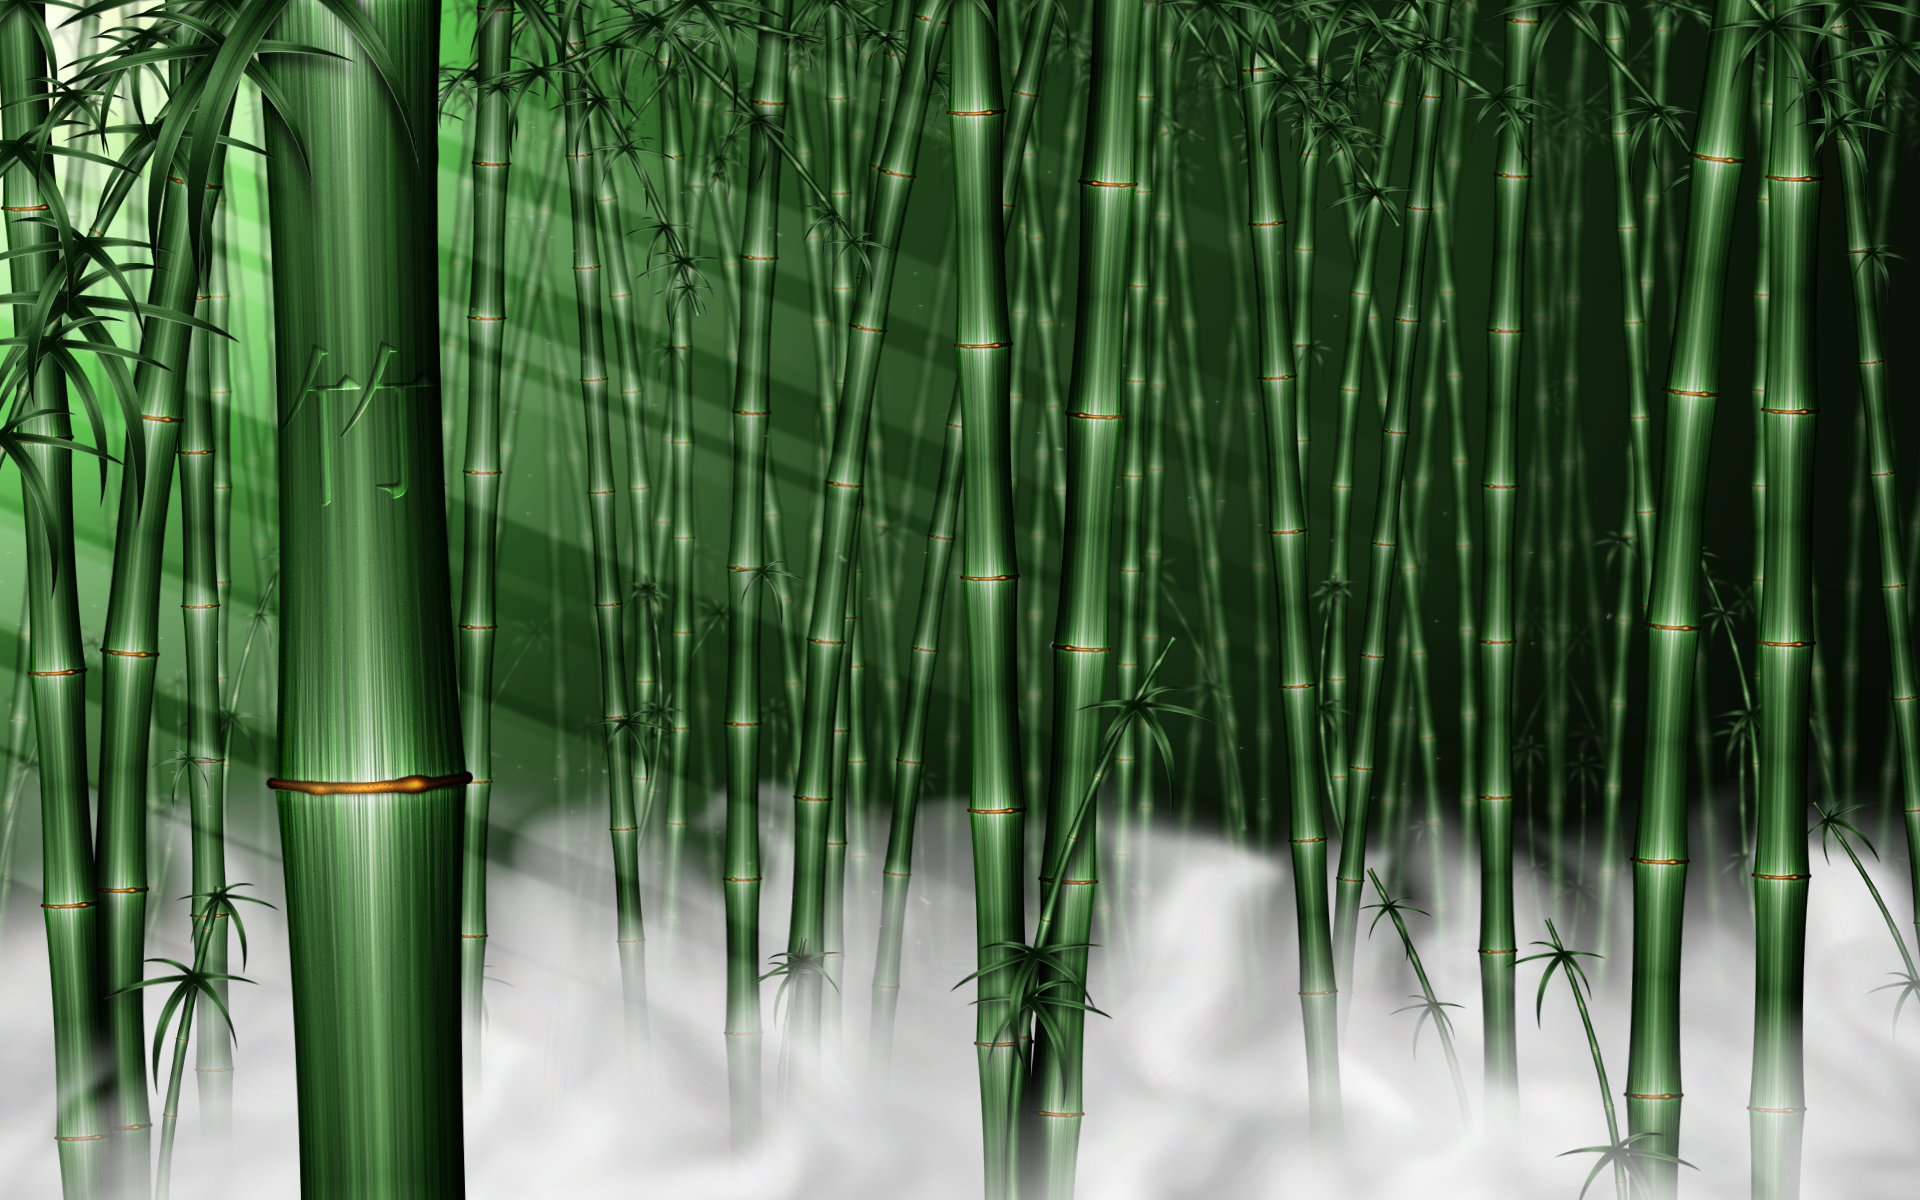 Forest wallpaper for room wallpapersafari for Bamboo mural wallpaper